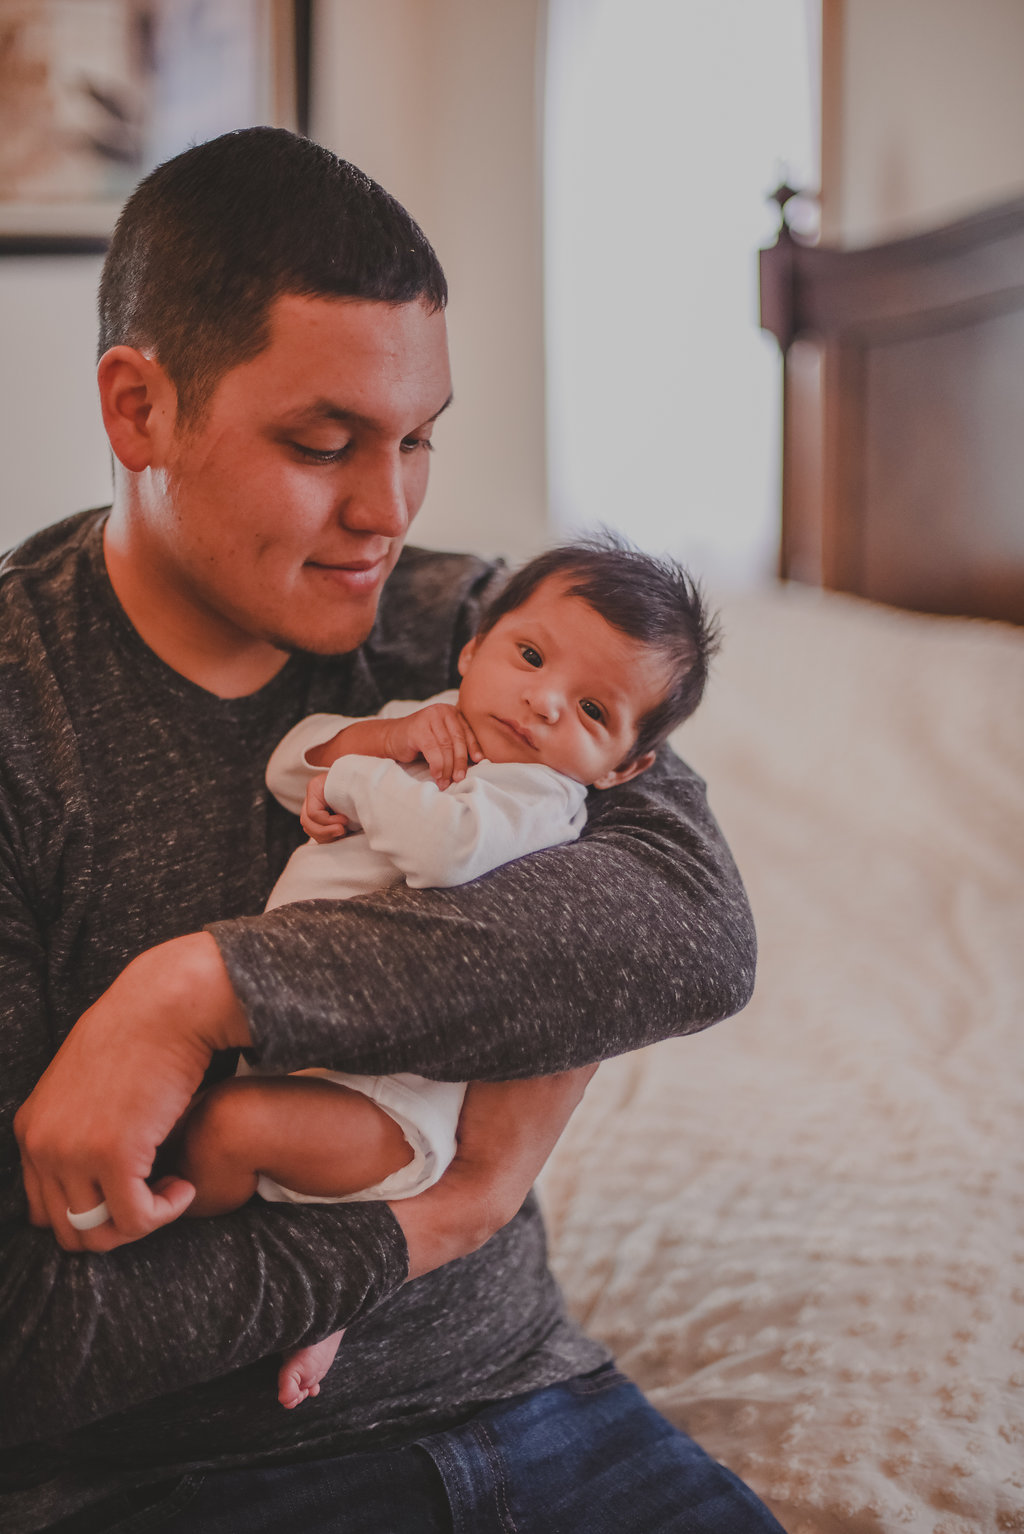 Syracuse / Tully, New York newborn twin boys home lifestyle session. Father with newborn baby // Emma Bauso Photography